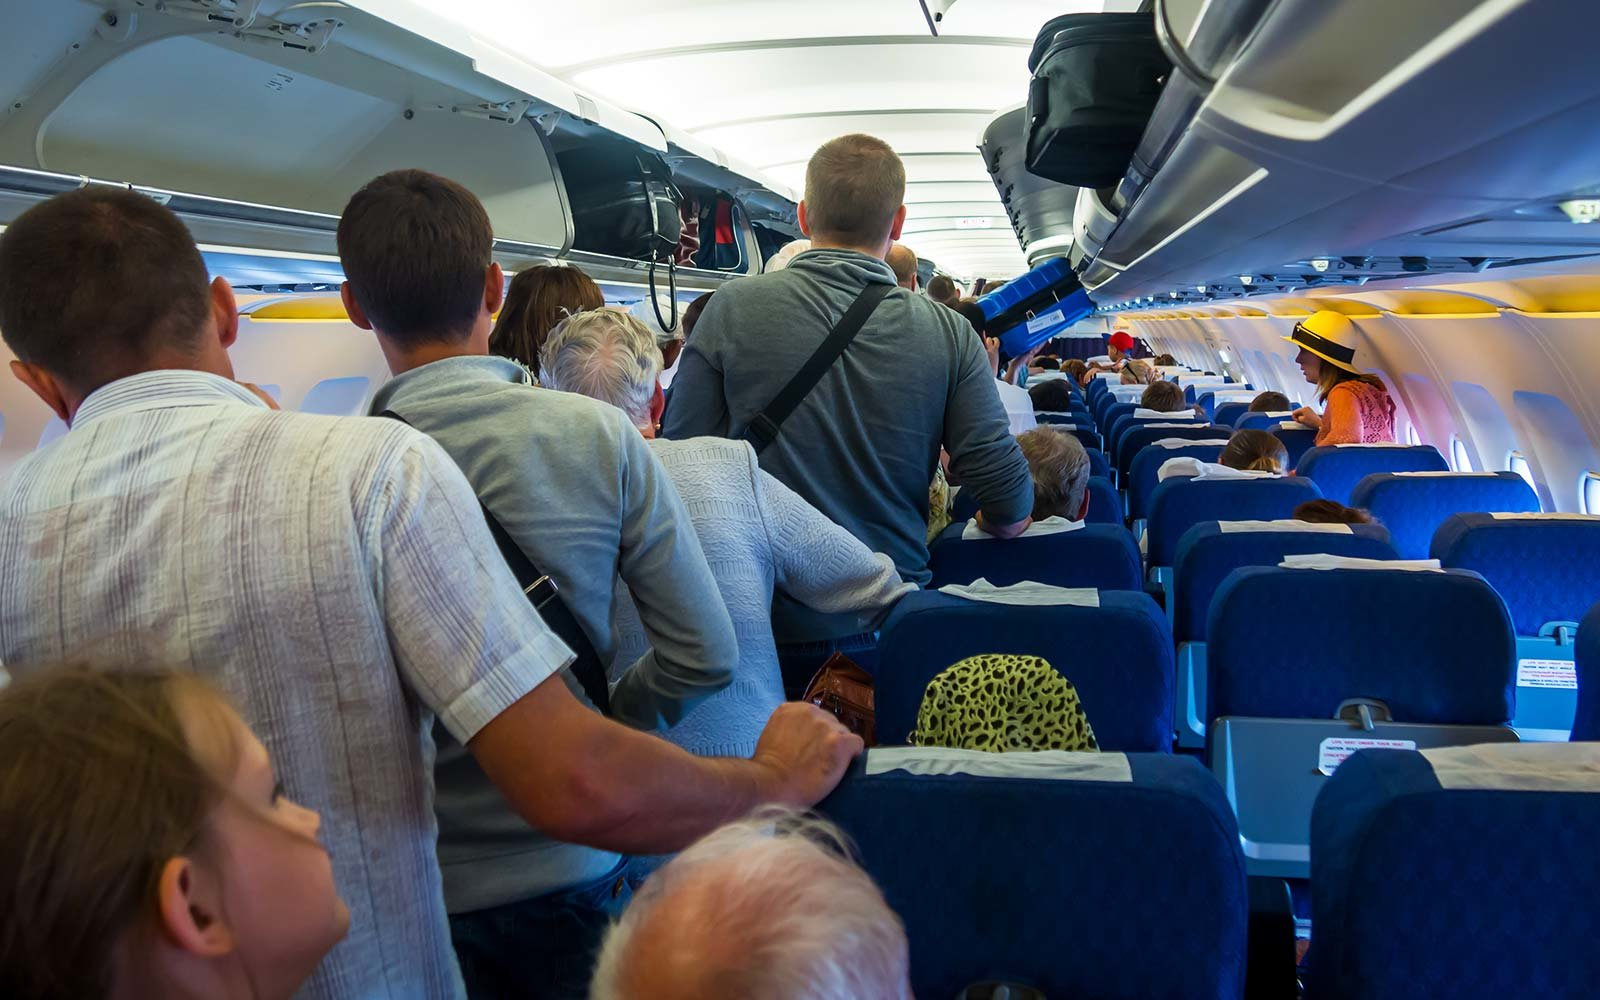 Economy Cabin Passengers prefer cheap flights over airline perks airplane